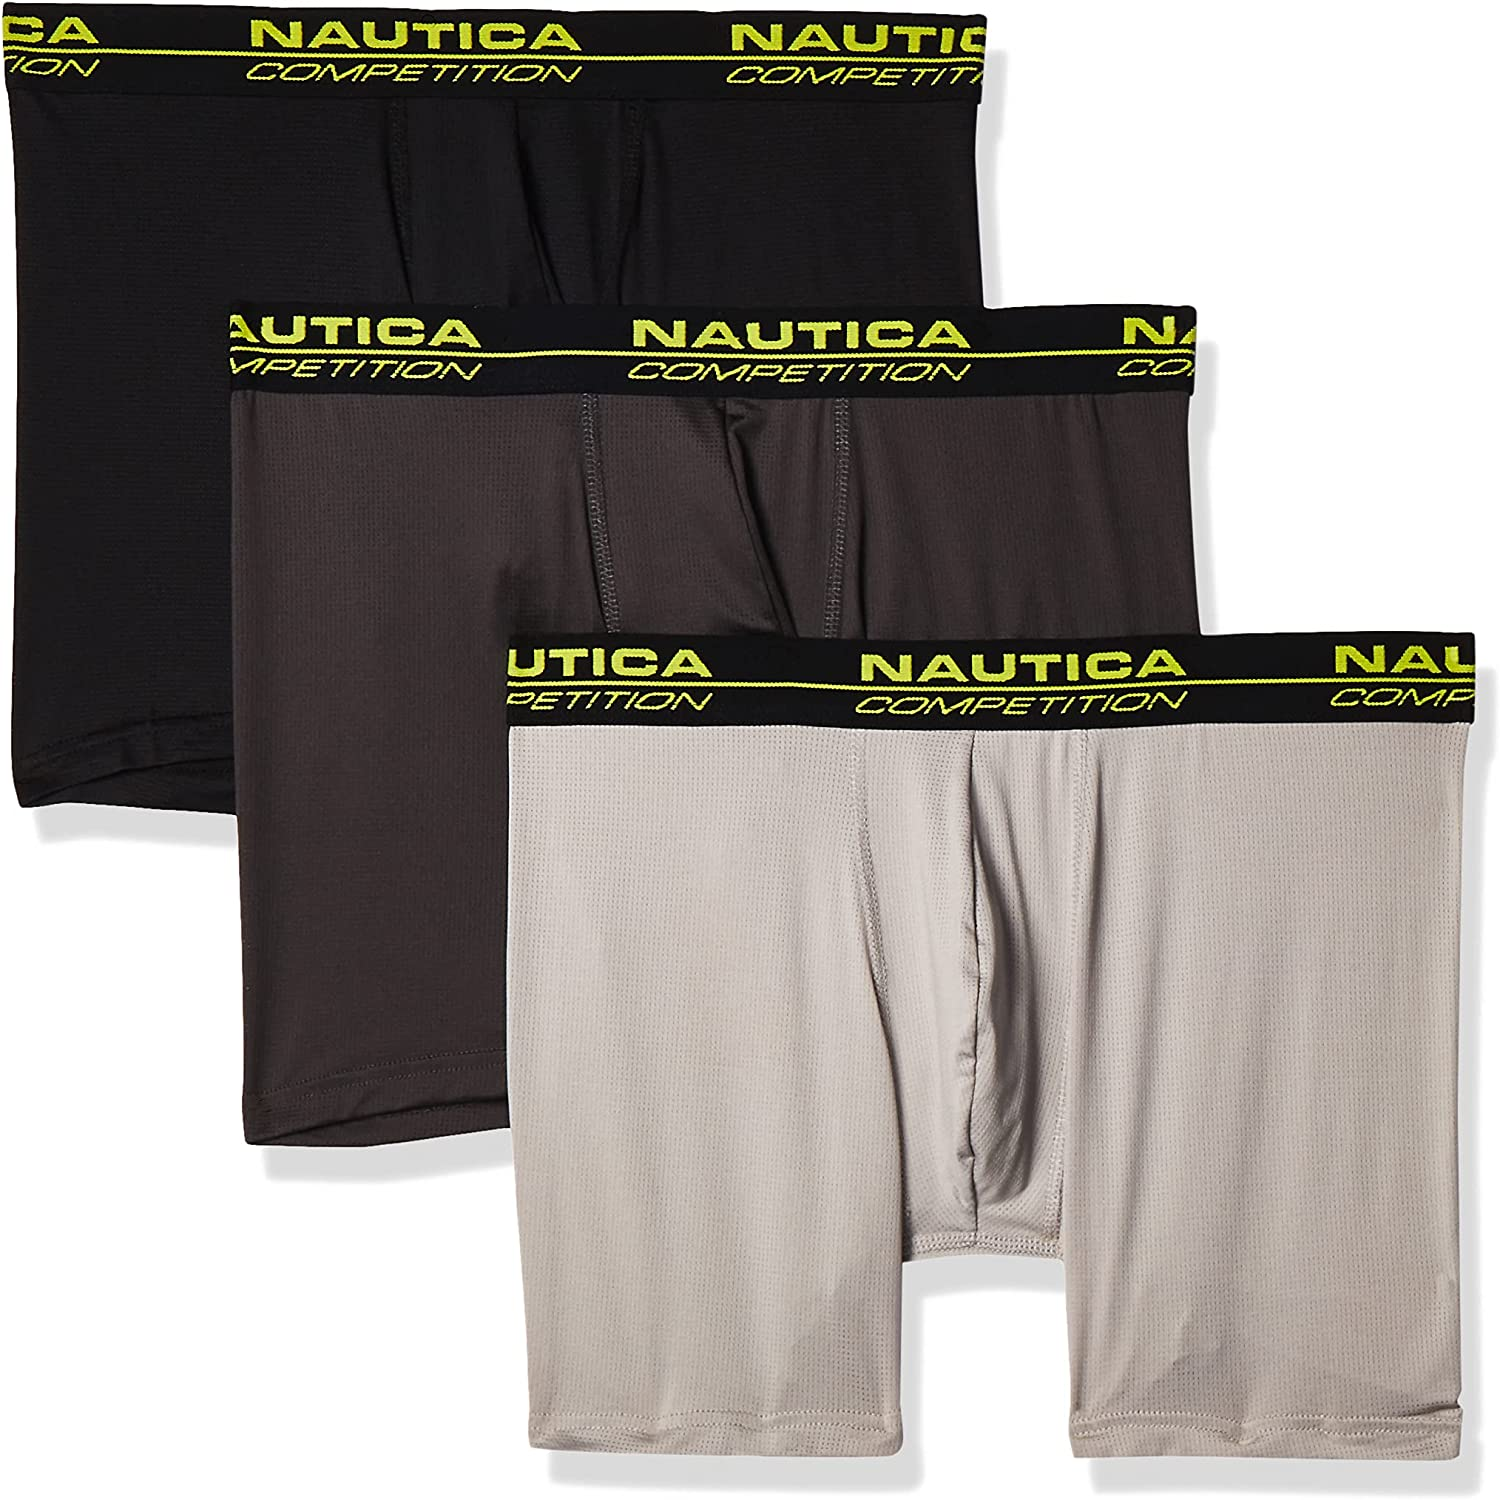 Nautica Men's Competition Light Weight Mesh 3 Pack Boxer Brief